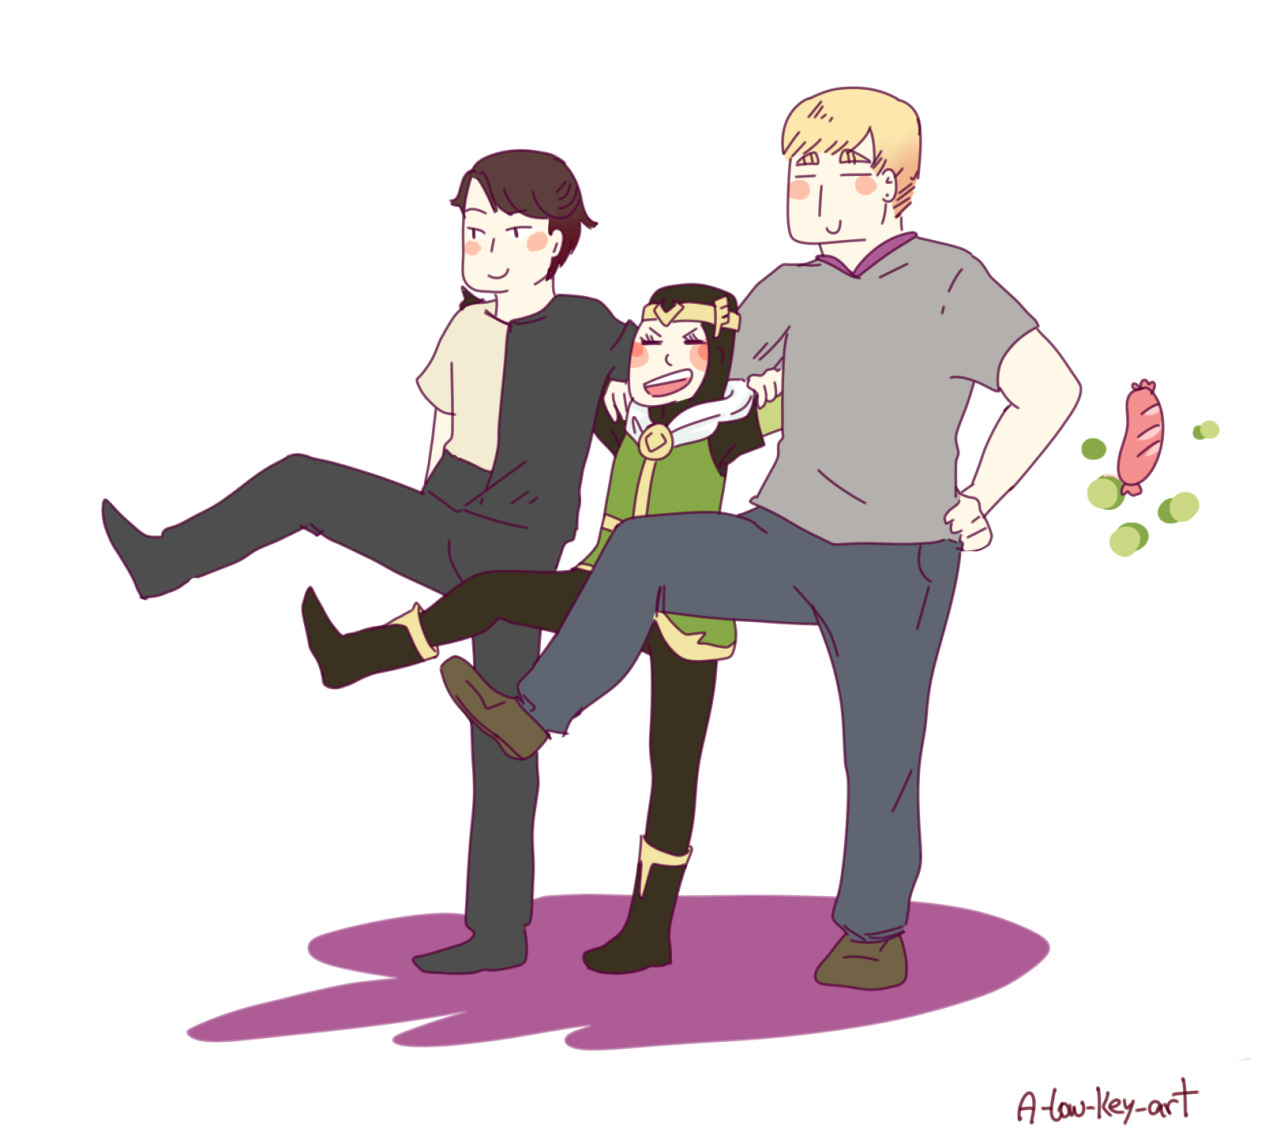 Billy, Loki and Teddy dancing can-can. I don't know what's going on anymore.